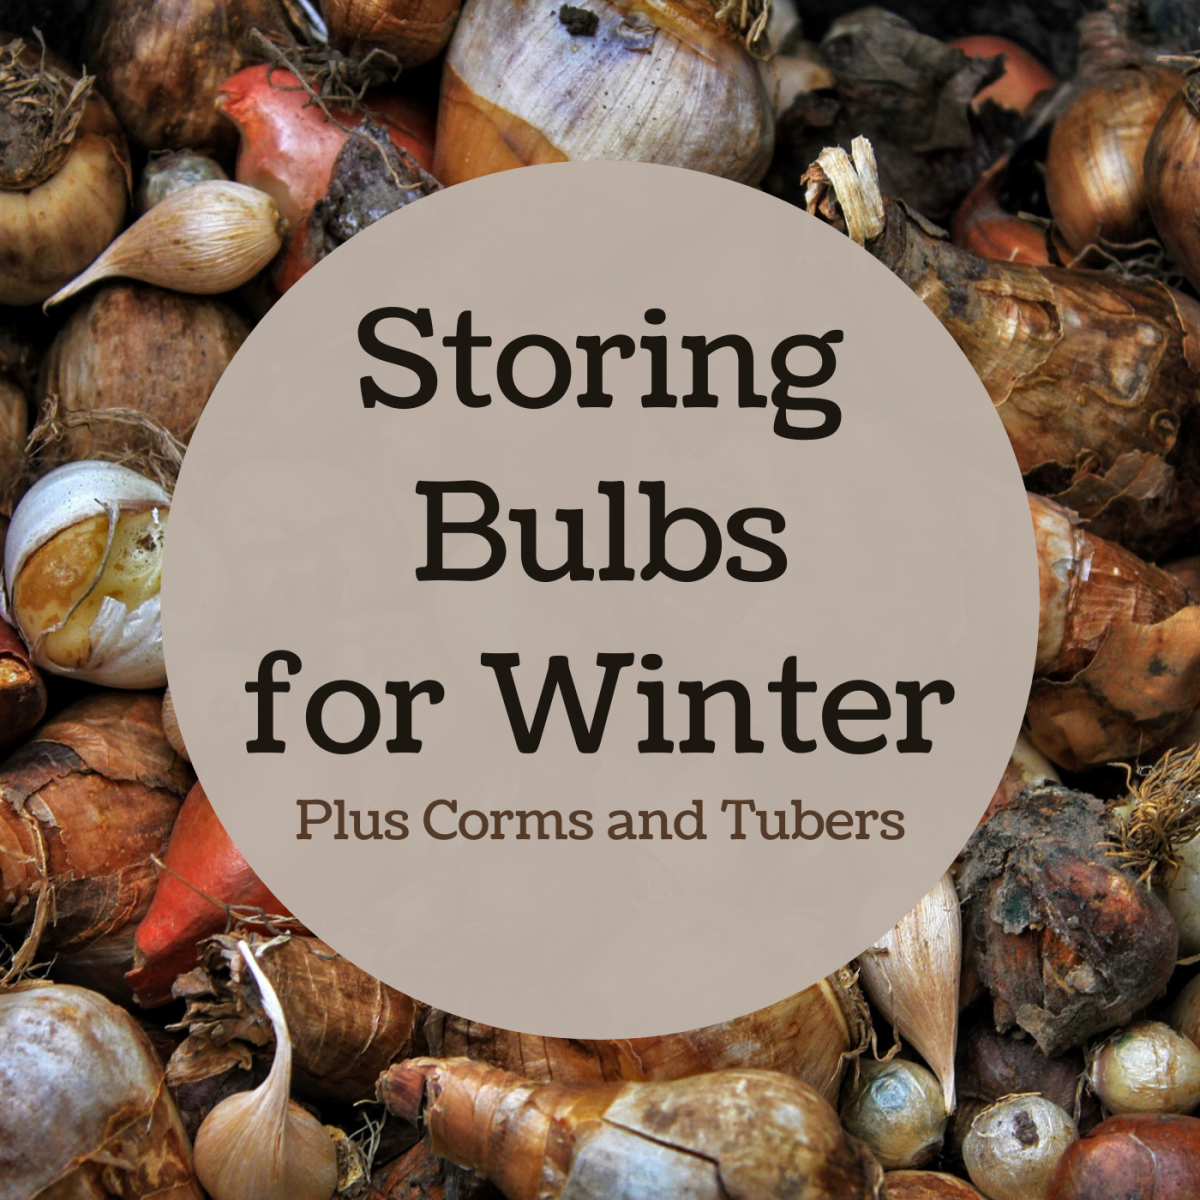 Learn how to store some common geophytes for winter, and get tips for the proper storage conditions for each one.